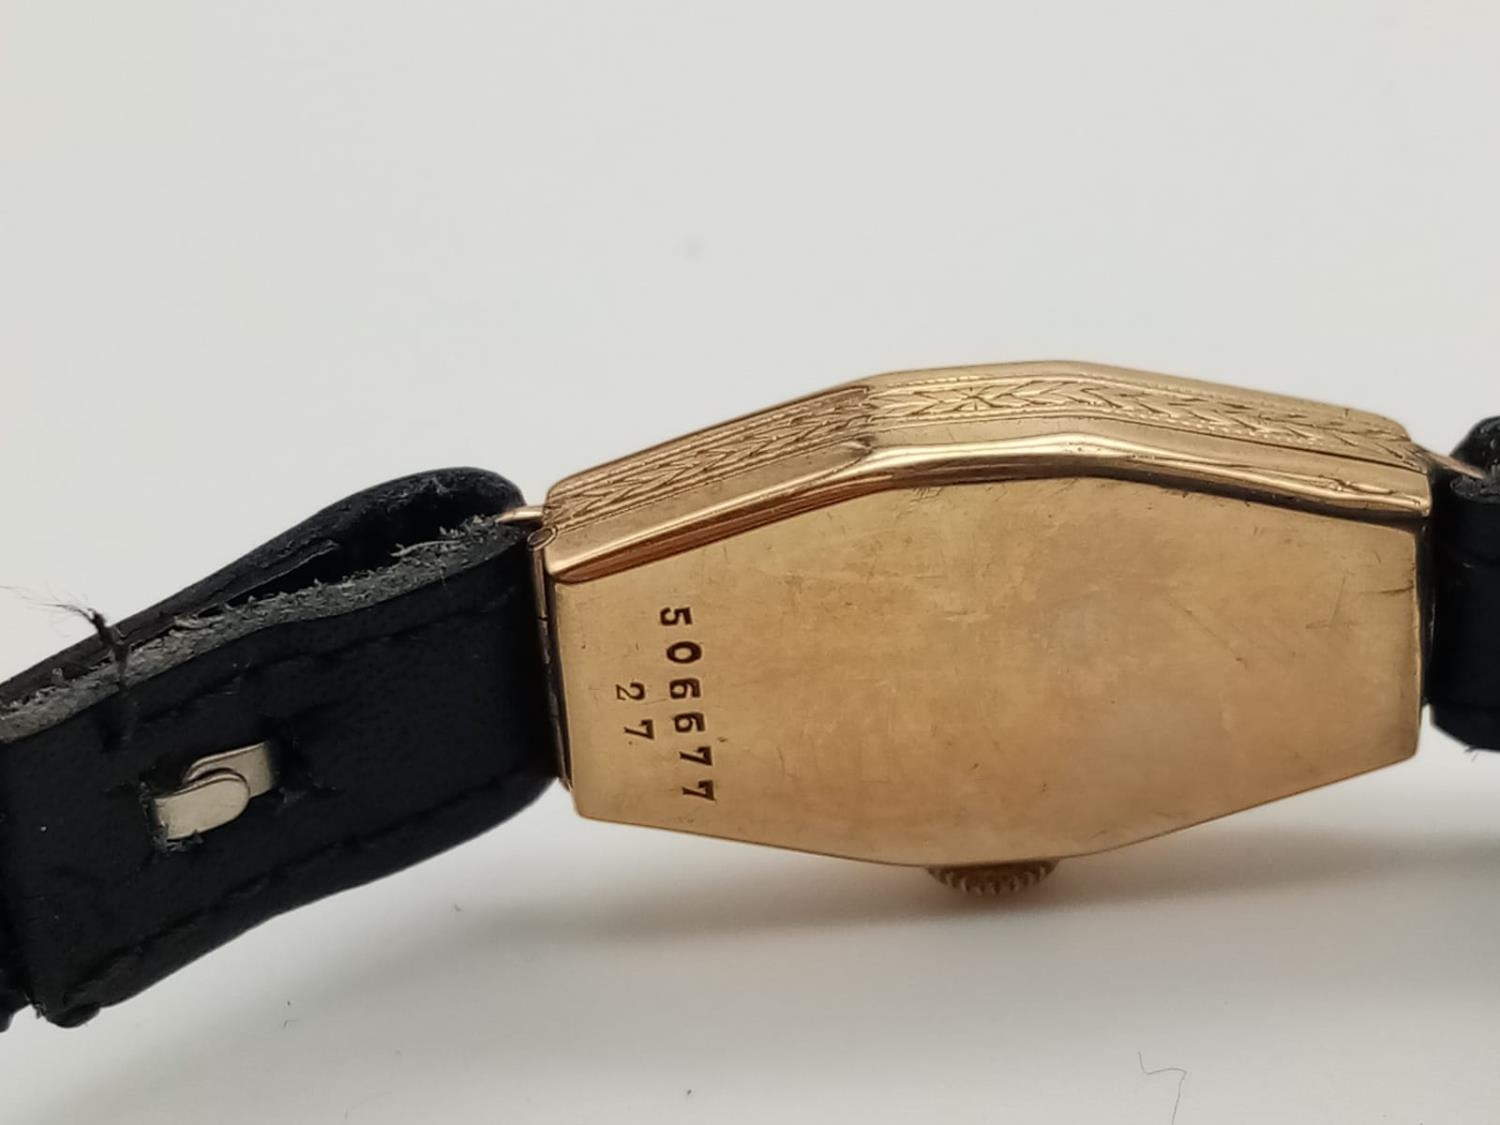 VINTAGE ROLEX 9K GOLD LADIES WRIST WATCH ON LEATHER STRAP. 16MM FWO - Image 5 of 6